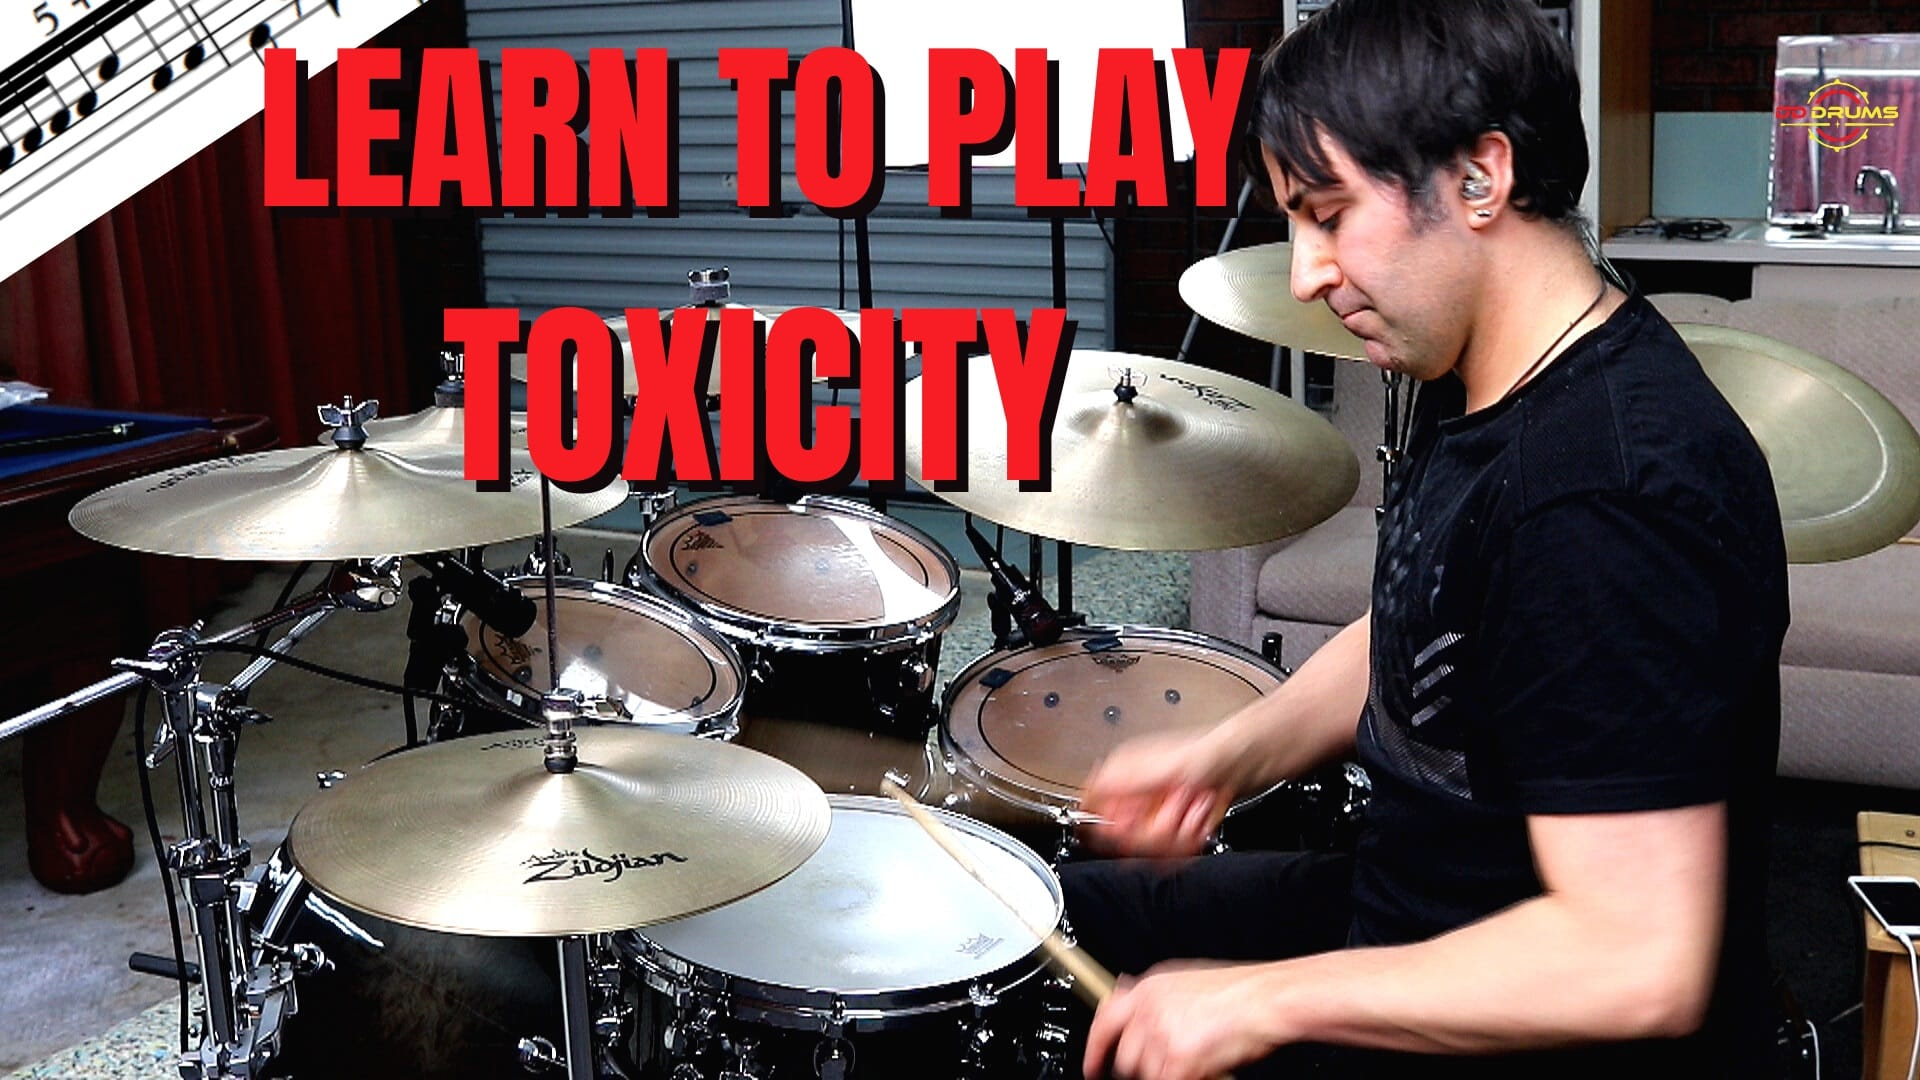 How to play 'Toxicity' by System of a Down on Drums – Drum Lesson